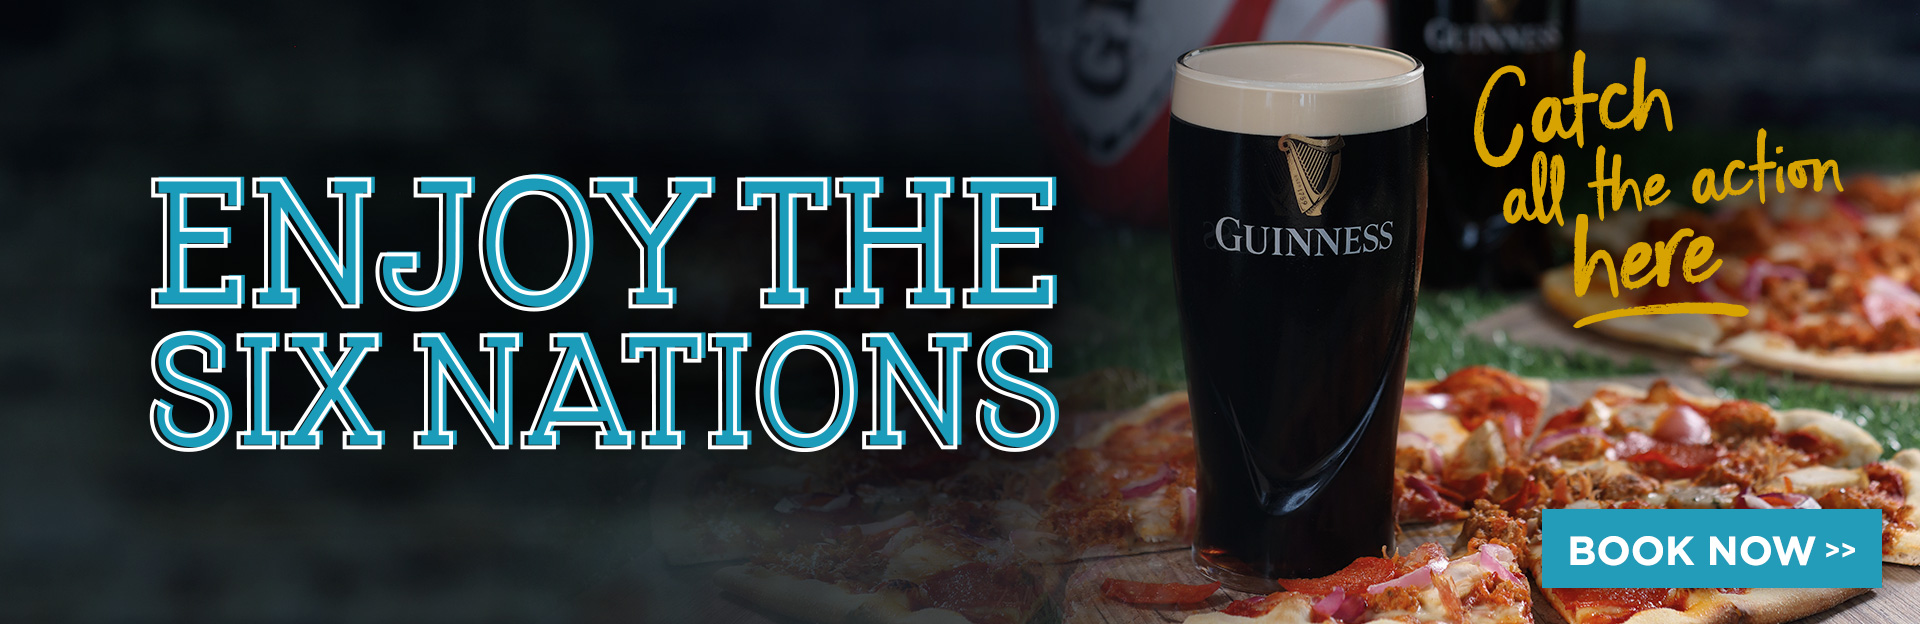 Six Nations at The Kings Arms